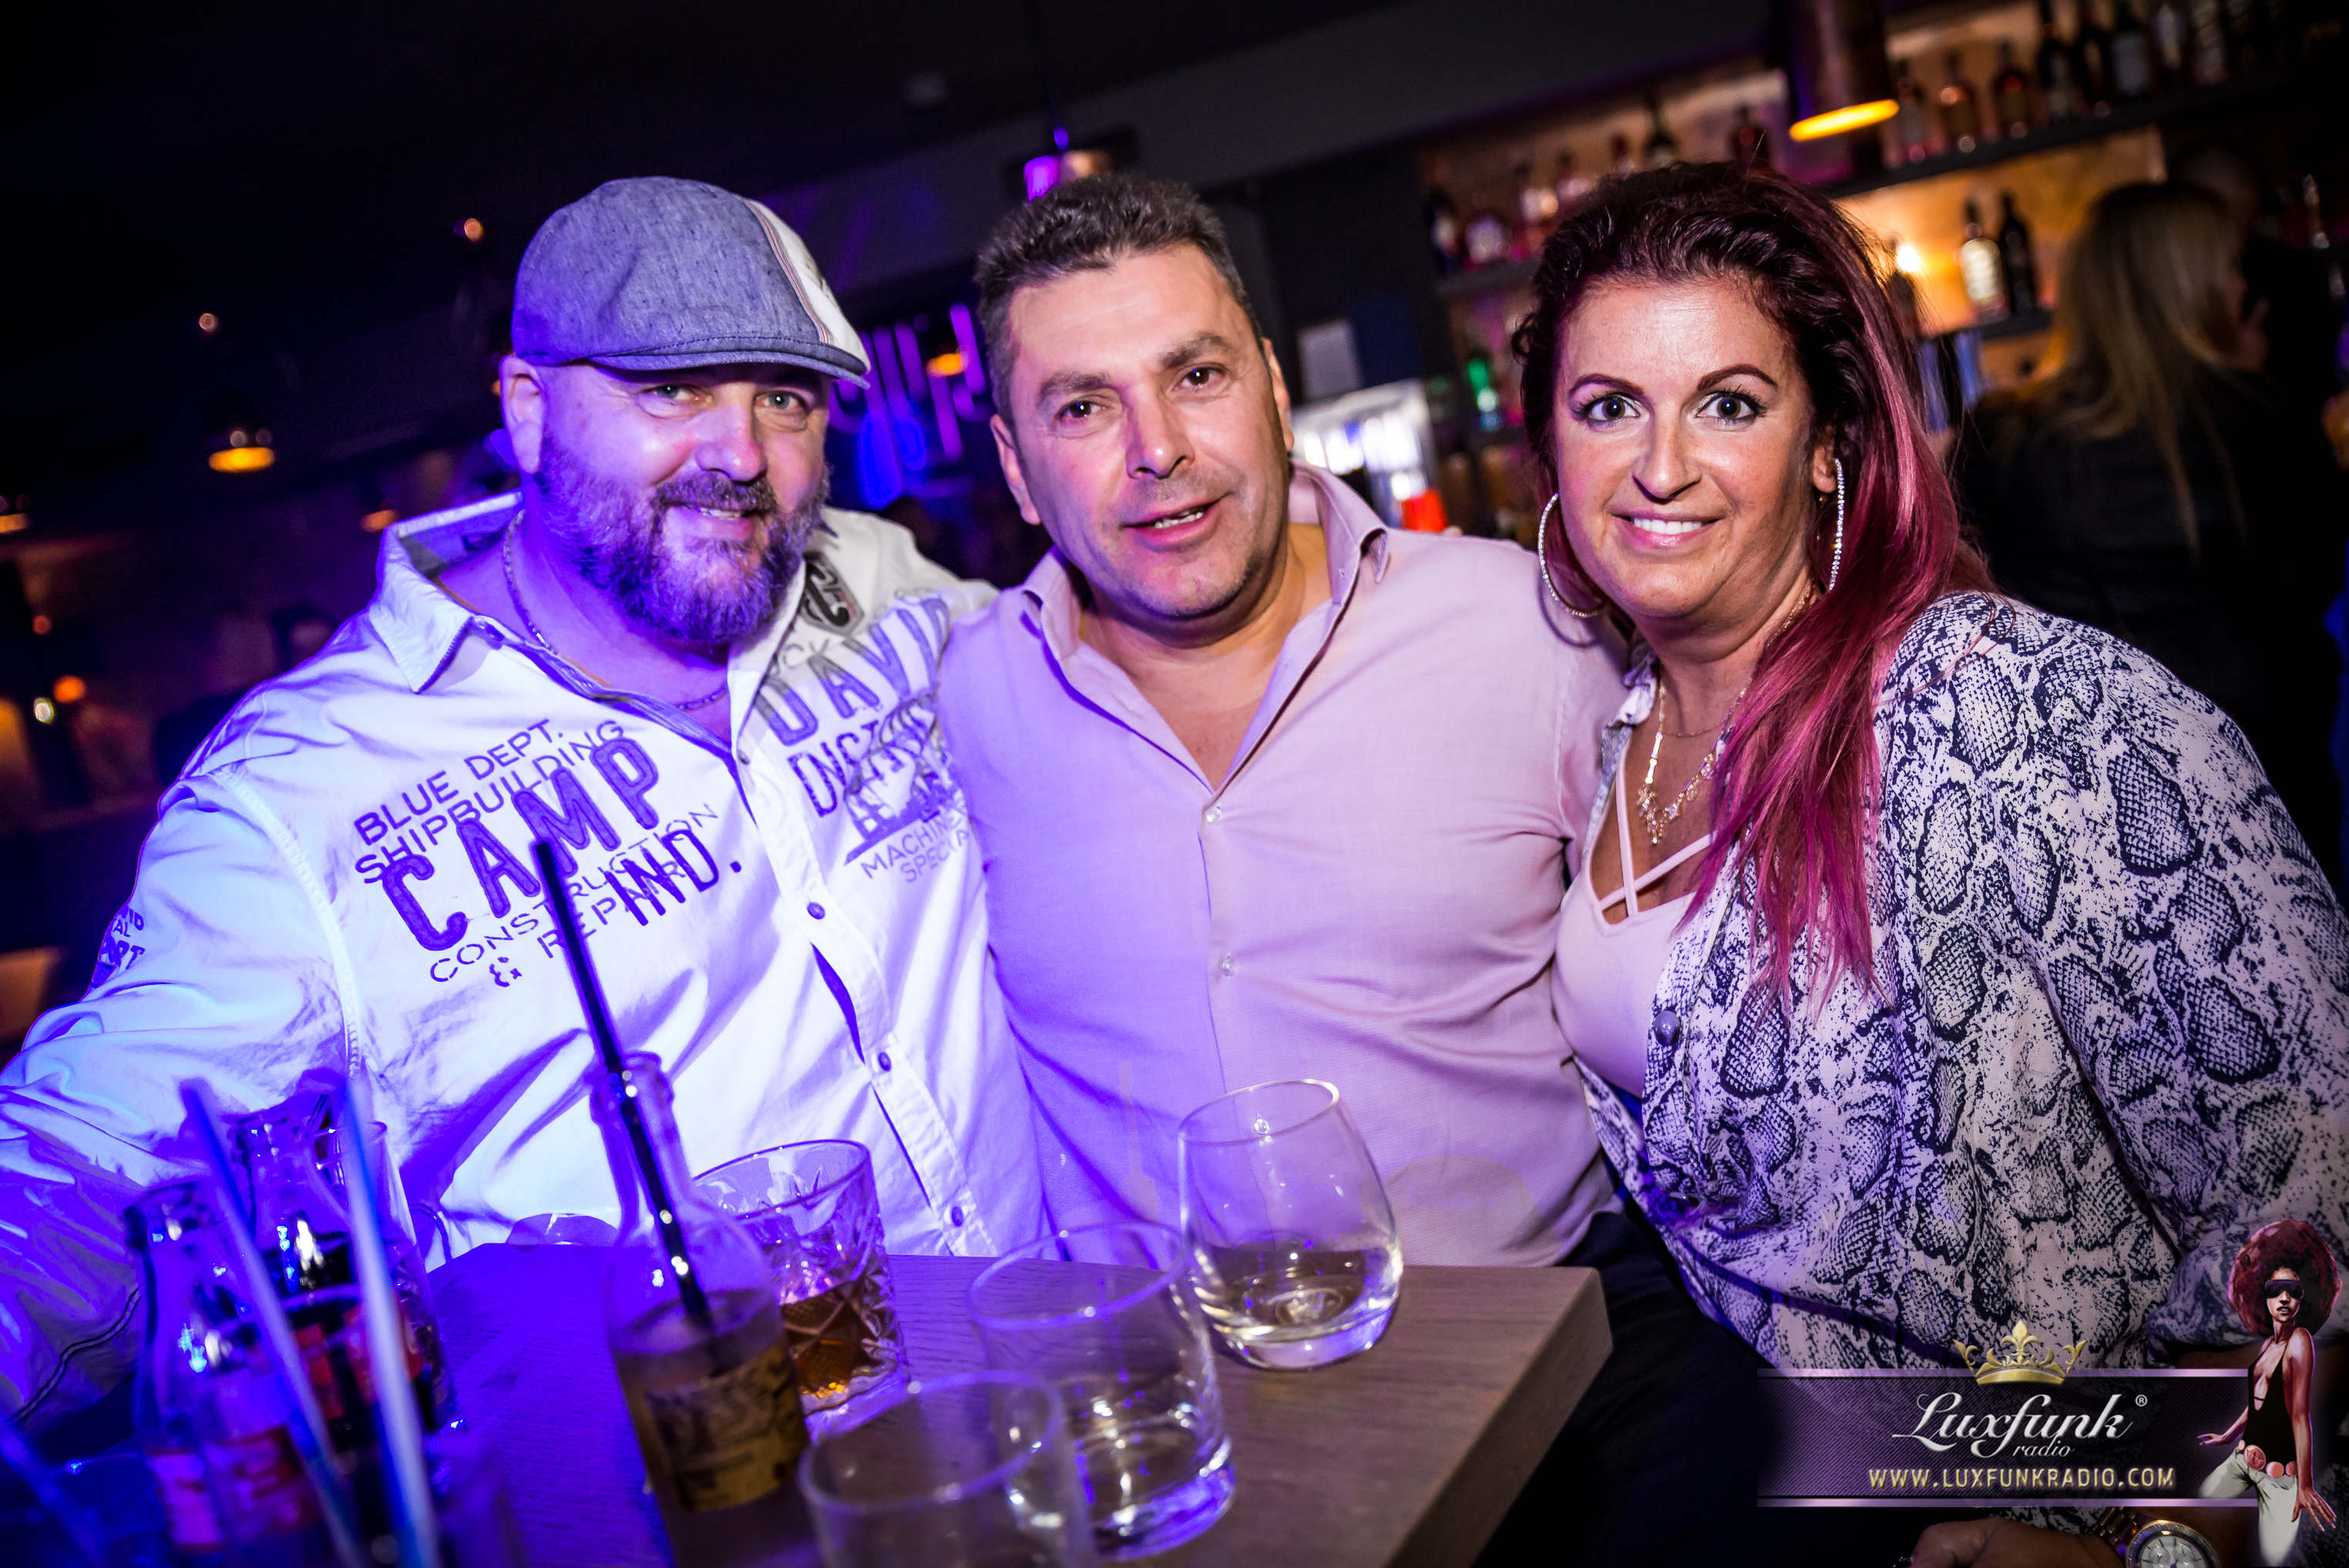 luxfunk-radio-funky-party-20191108-lock-budapest-1262